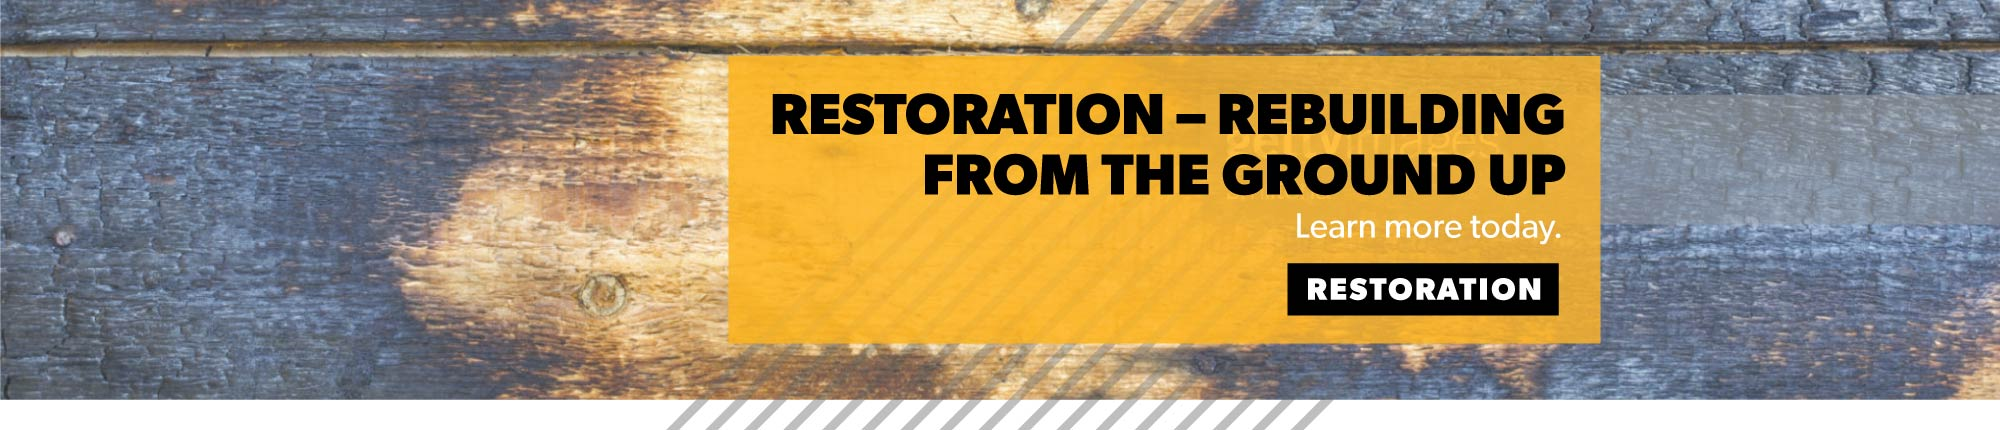 Restoration – Rebuilding From the Ground Up